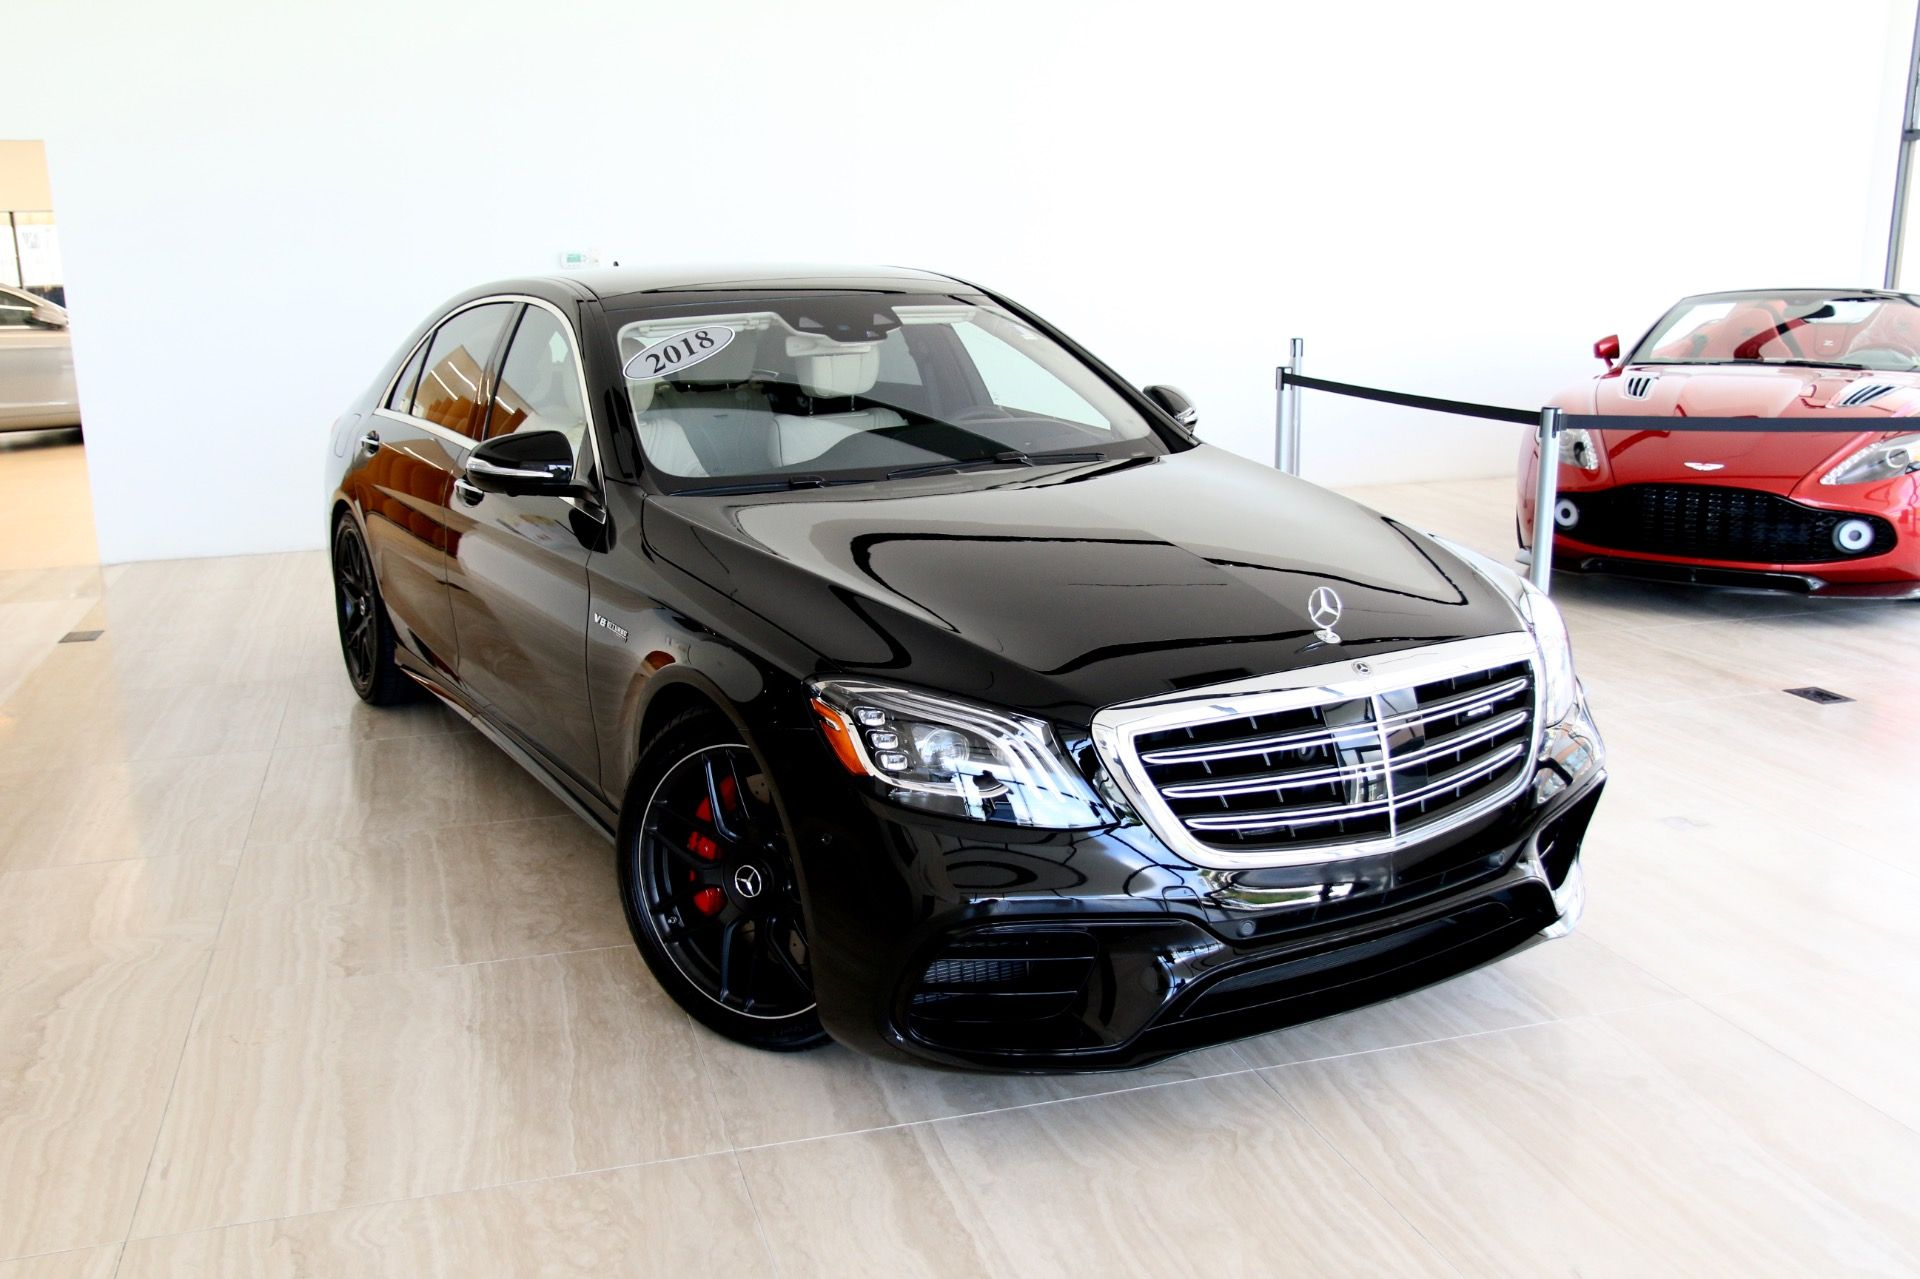 New Mercedes Benz Vehicles For Sale In Temecula New Mercedes Mercedes Benz Benz